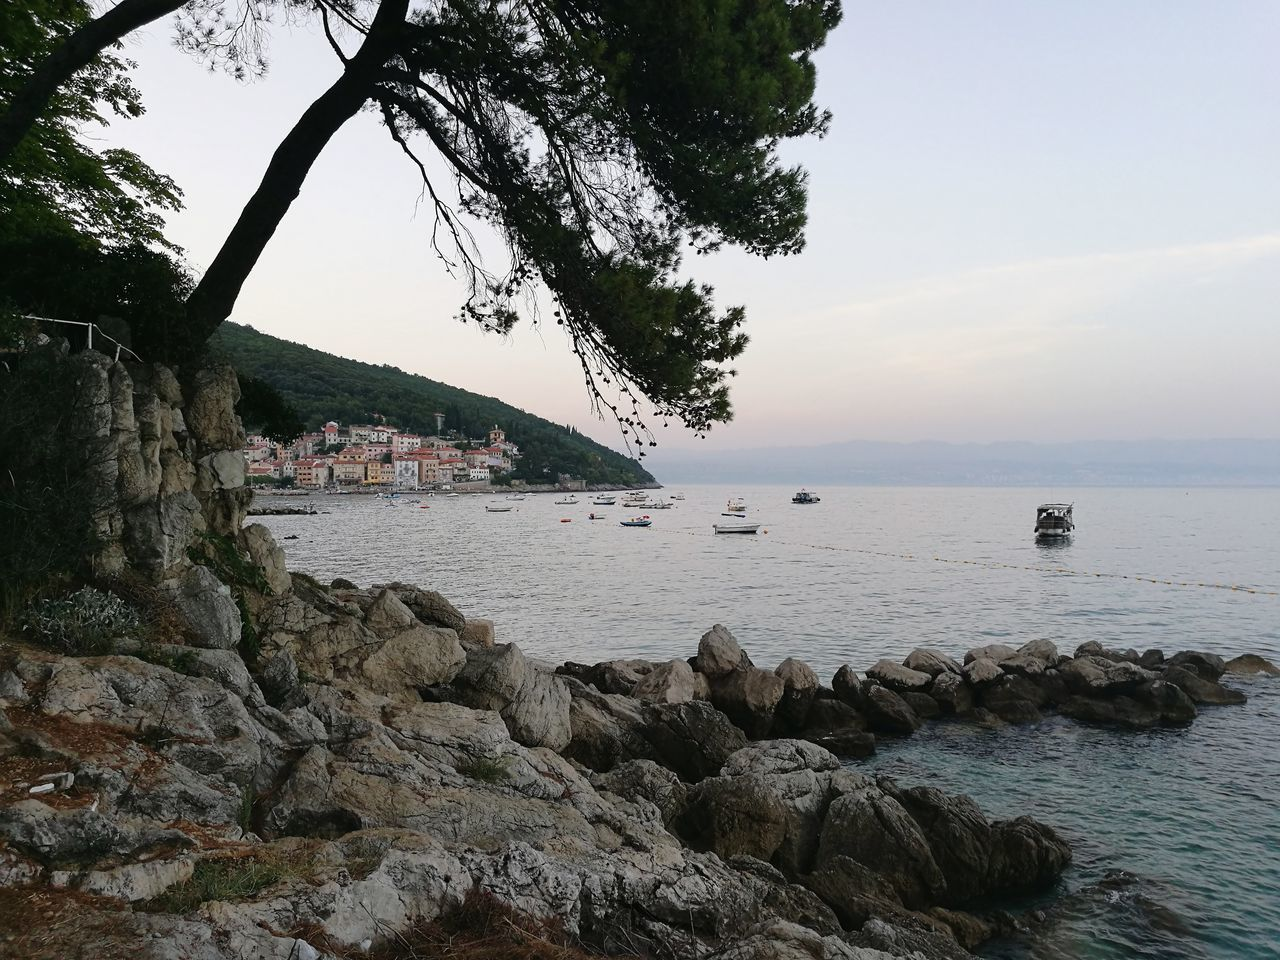 water, sea, tree, nature, rock - object, beauty in nature, scenics, outdoors, tranquility, sky, tranquil scene, beach, day, built structure, no people, horizon over water, architecture, nautical vessel